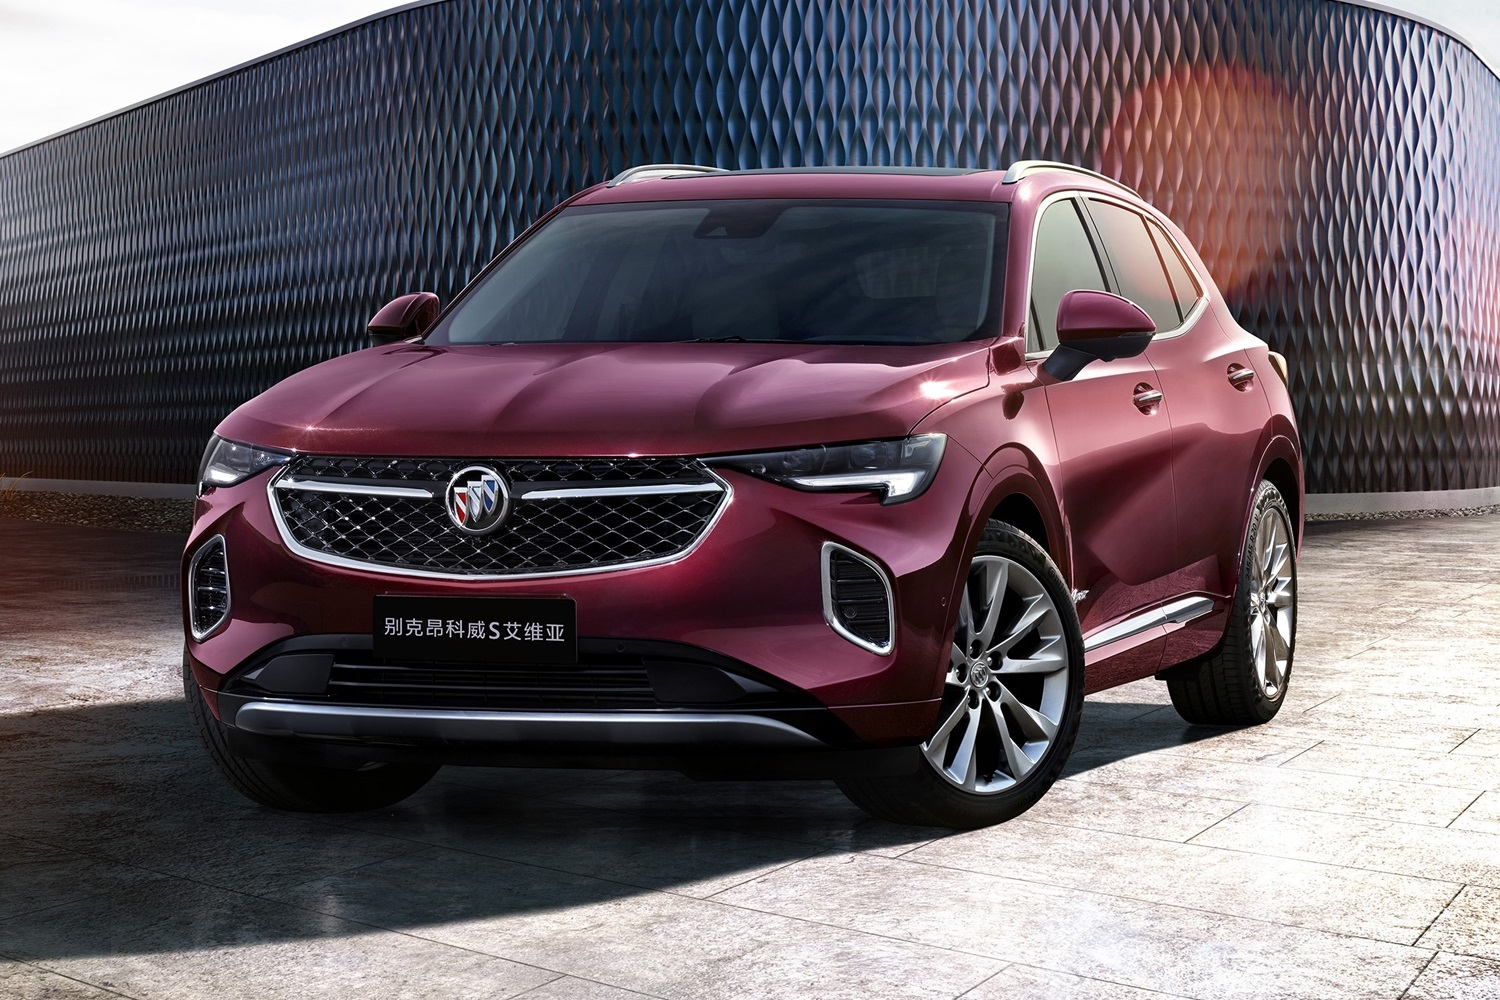 Range-Topping 2021 Buick Envision Avenir Revealed | Gm Authority New 2022 Buick Envision Reviews, Dimensions, Colors